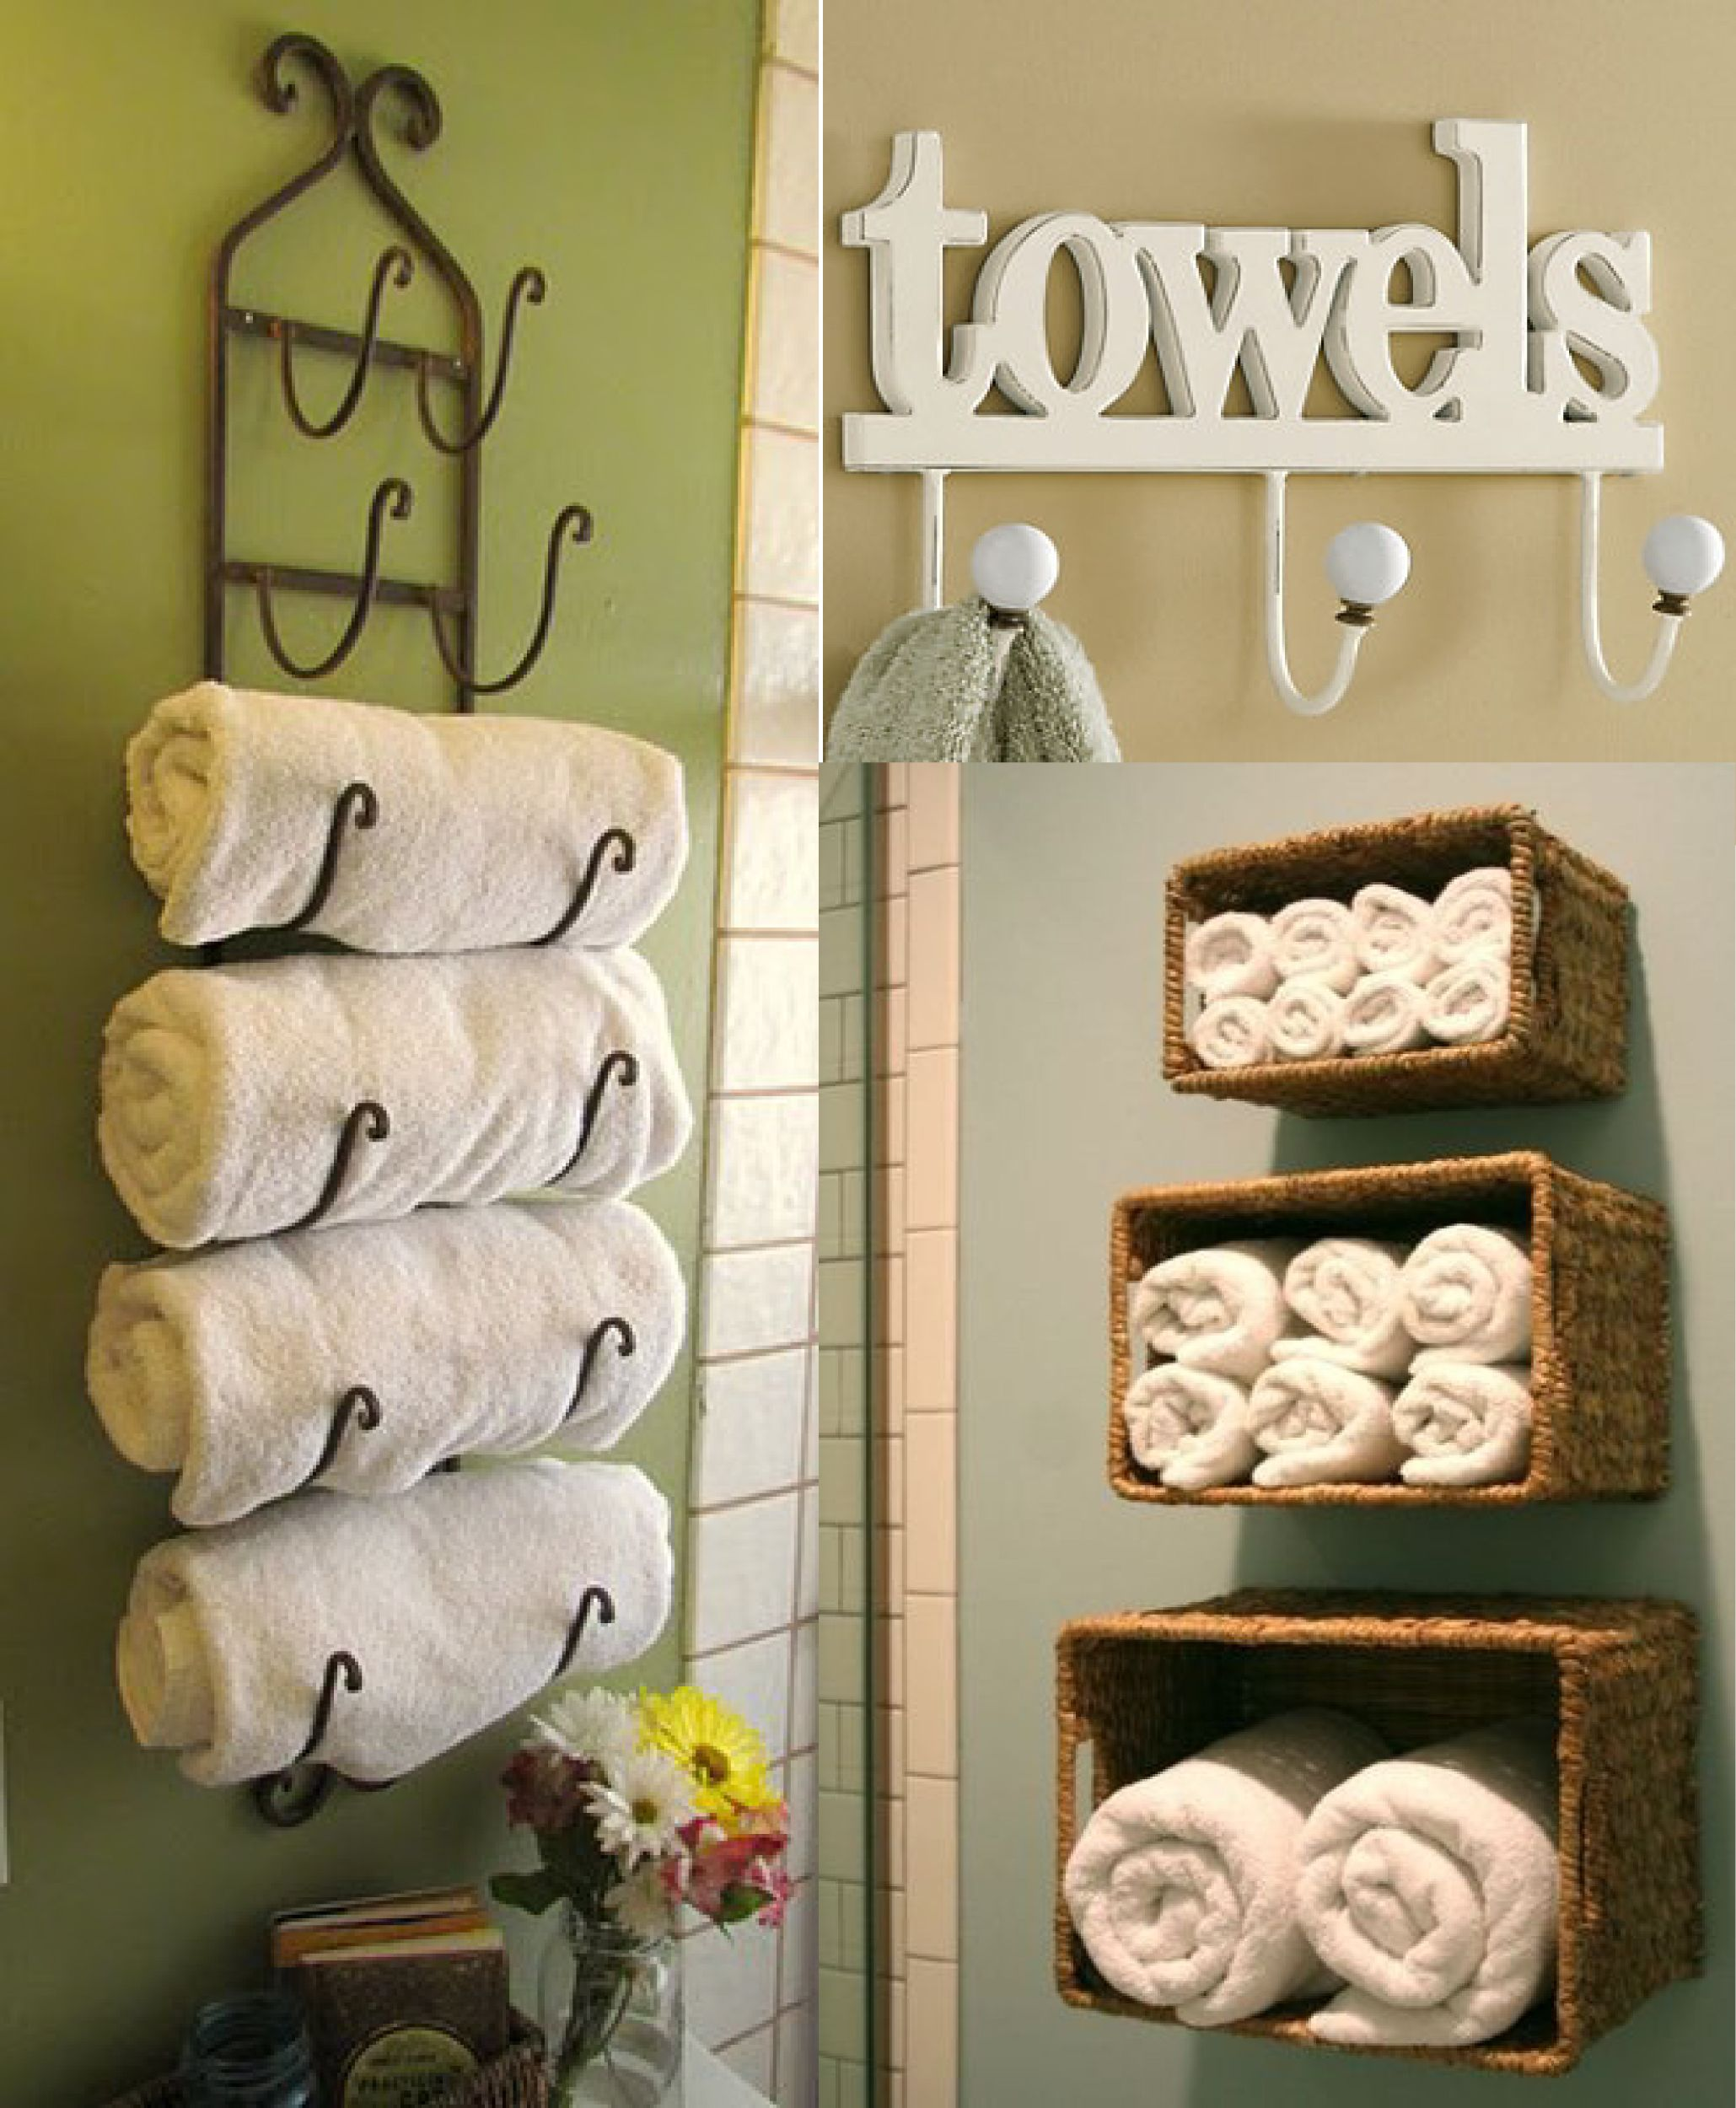 50 Brilliant Easy Cheap Storage Ideas Lots Of Tips And Tricks Cheap Storage Wine Racks And Towels